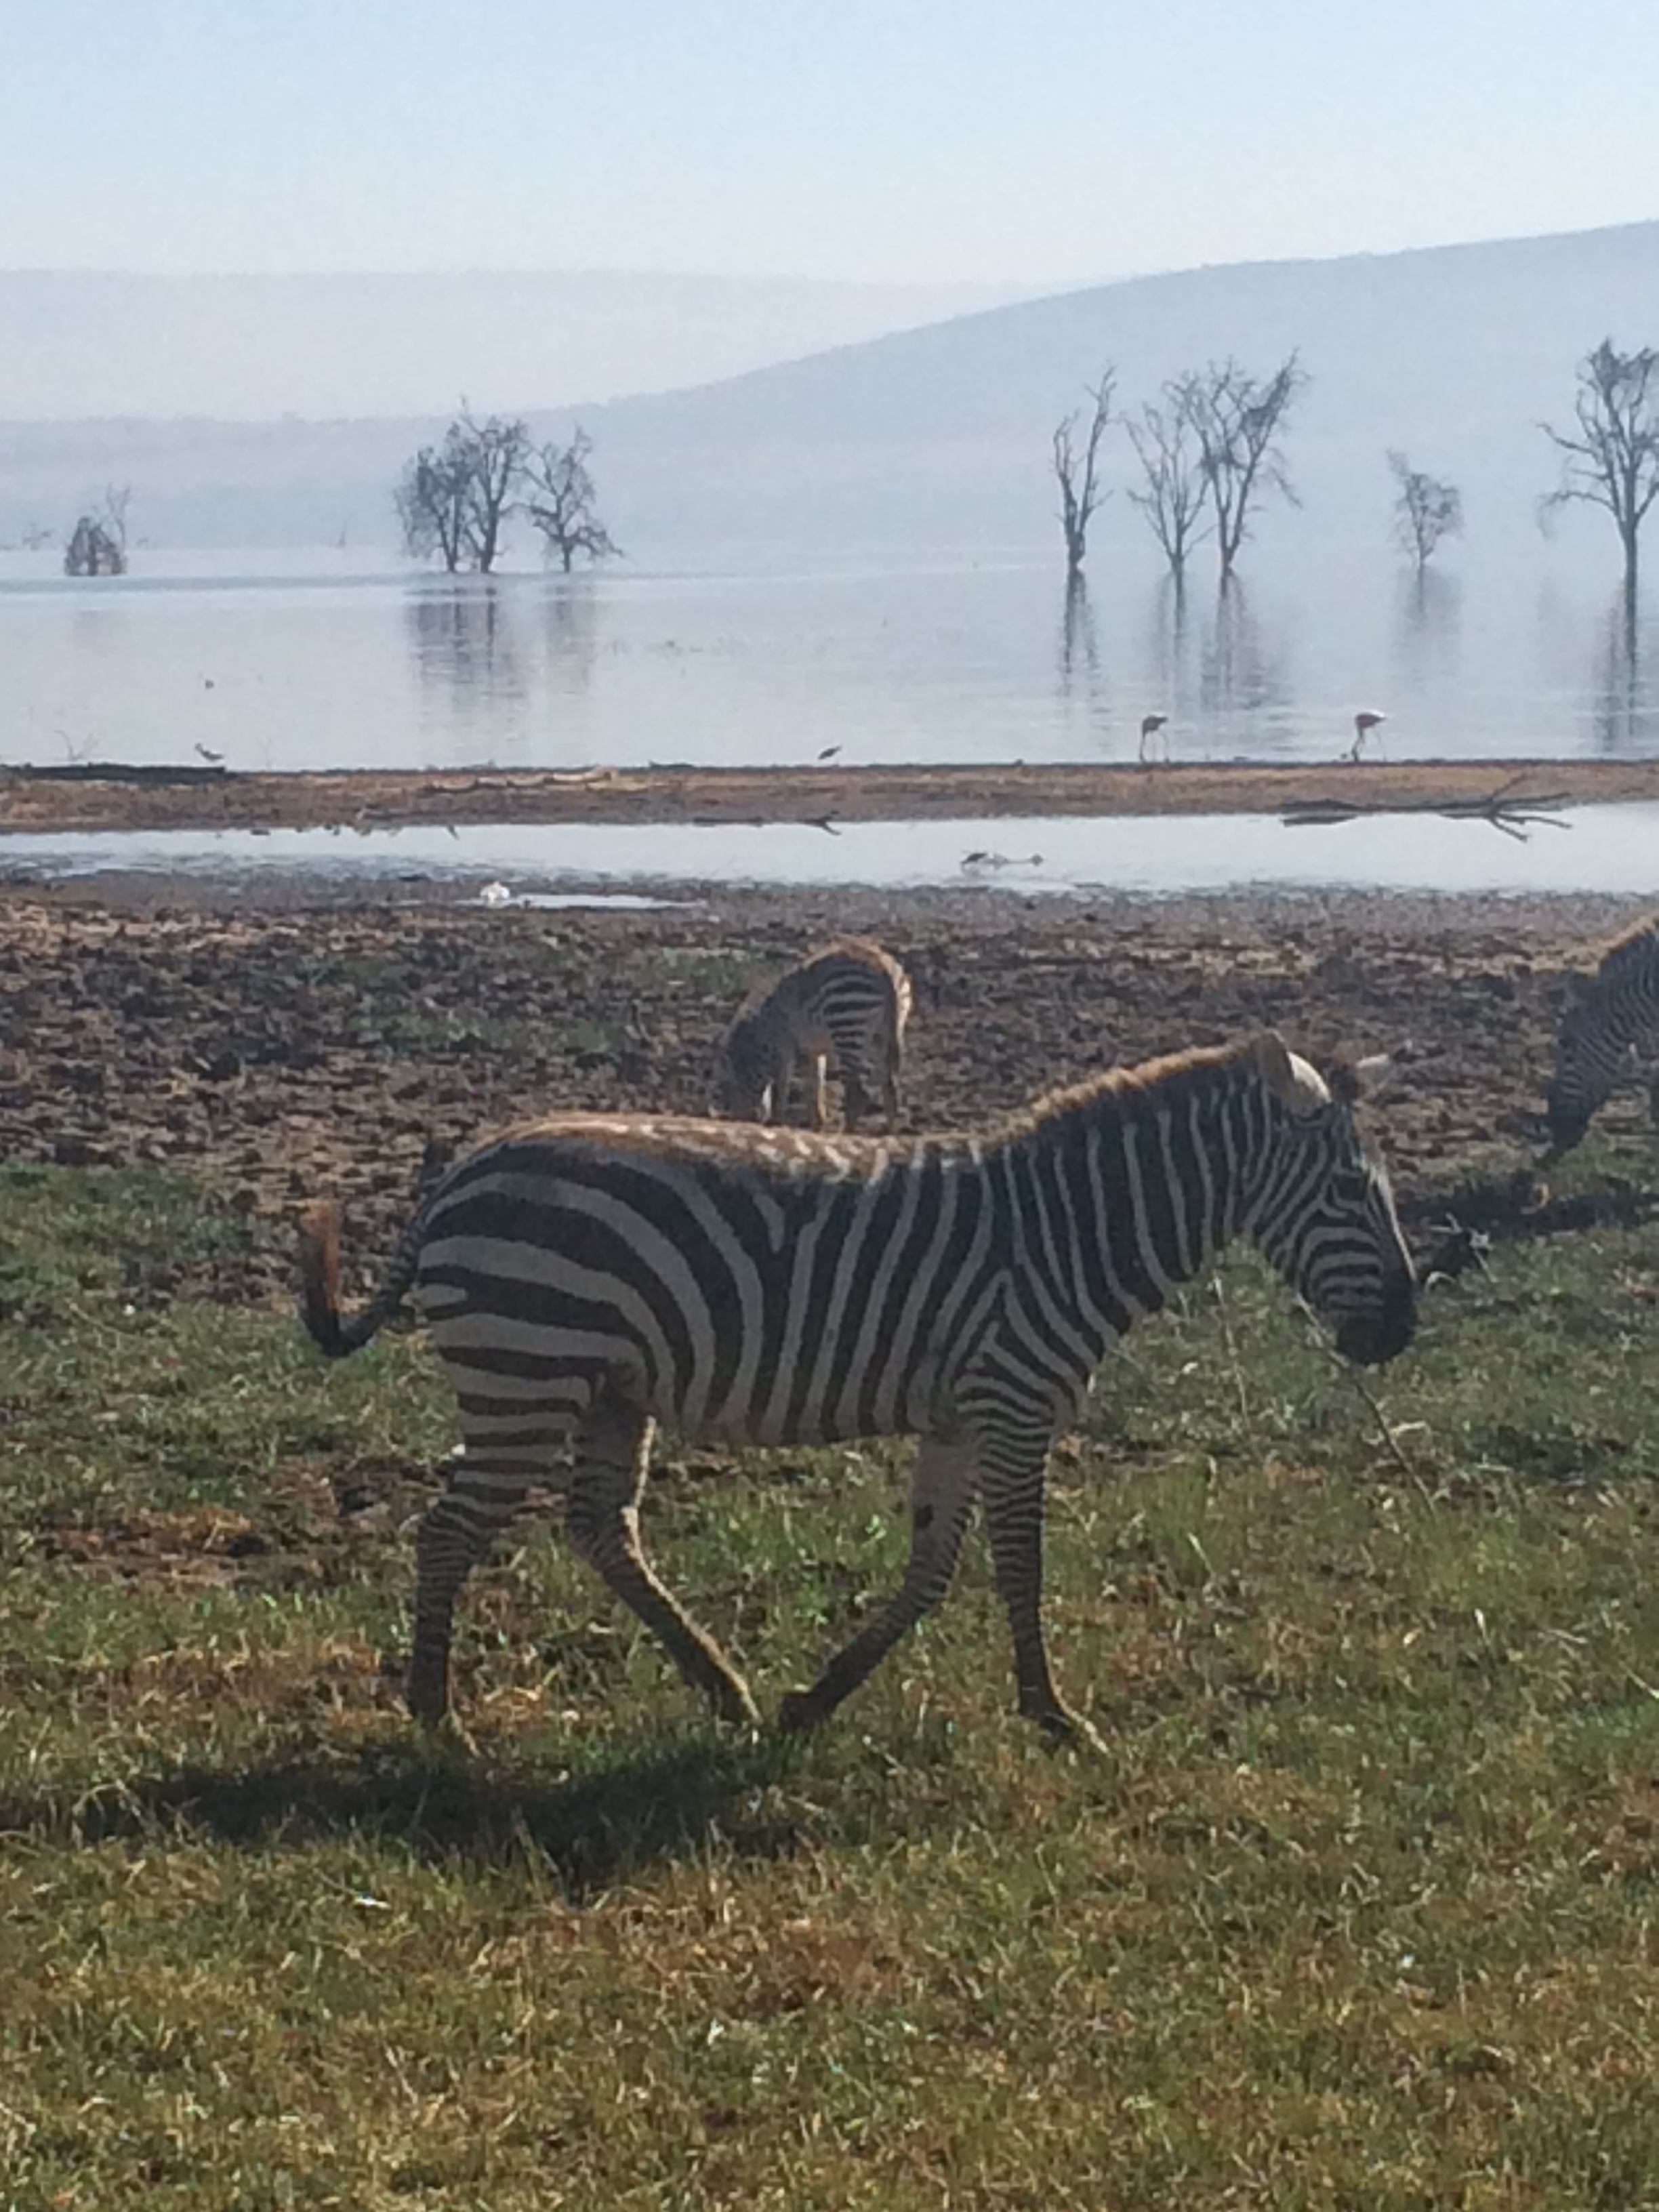 Zebra at Lake Nakuru National Park, Kenya, Africa